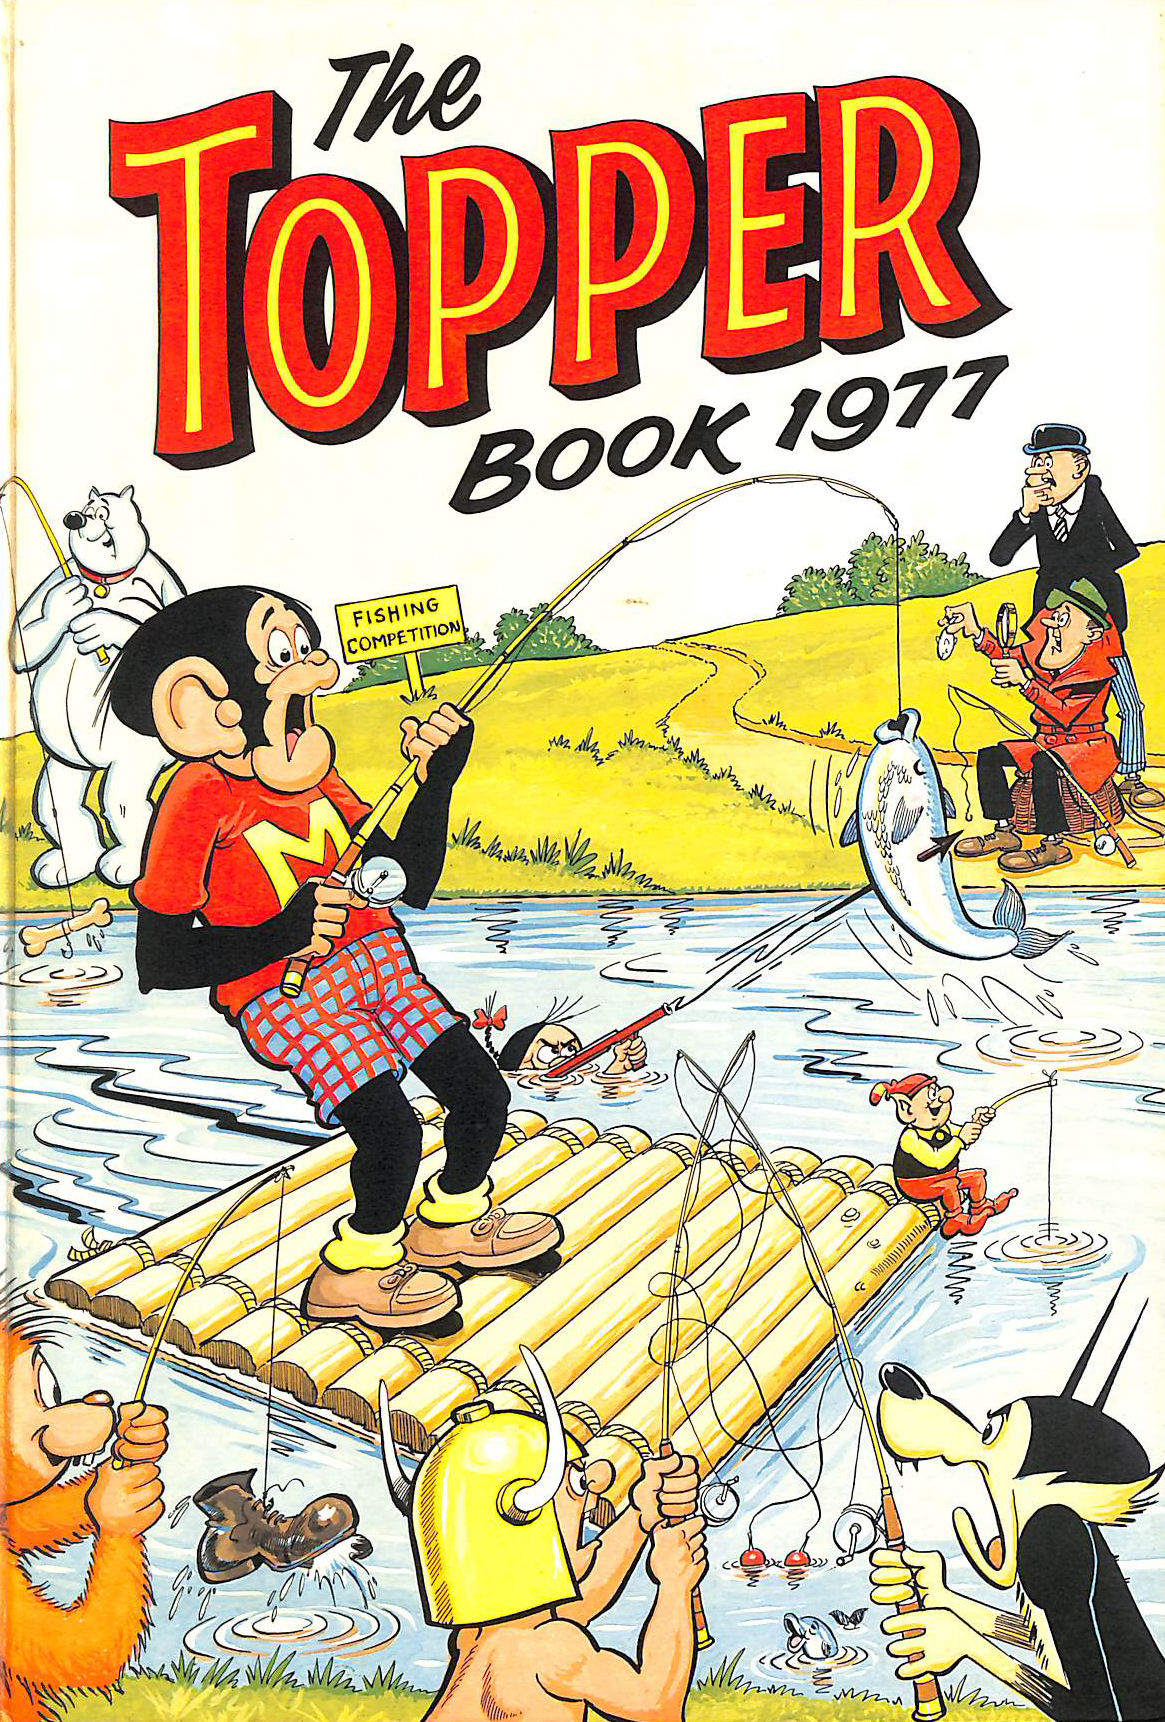 Image for The Topper Book 1977